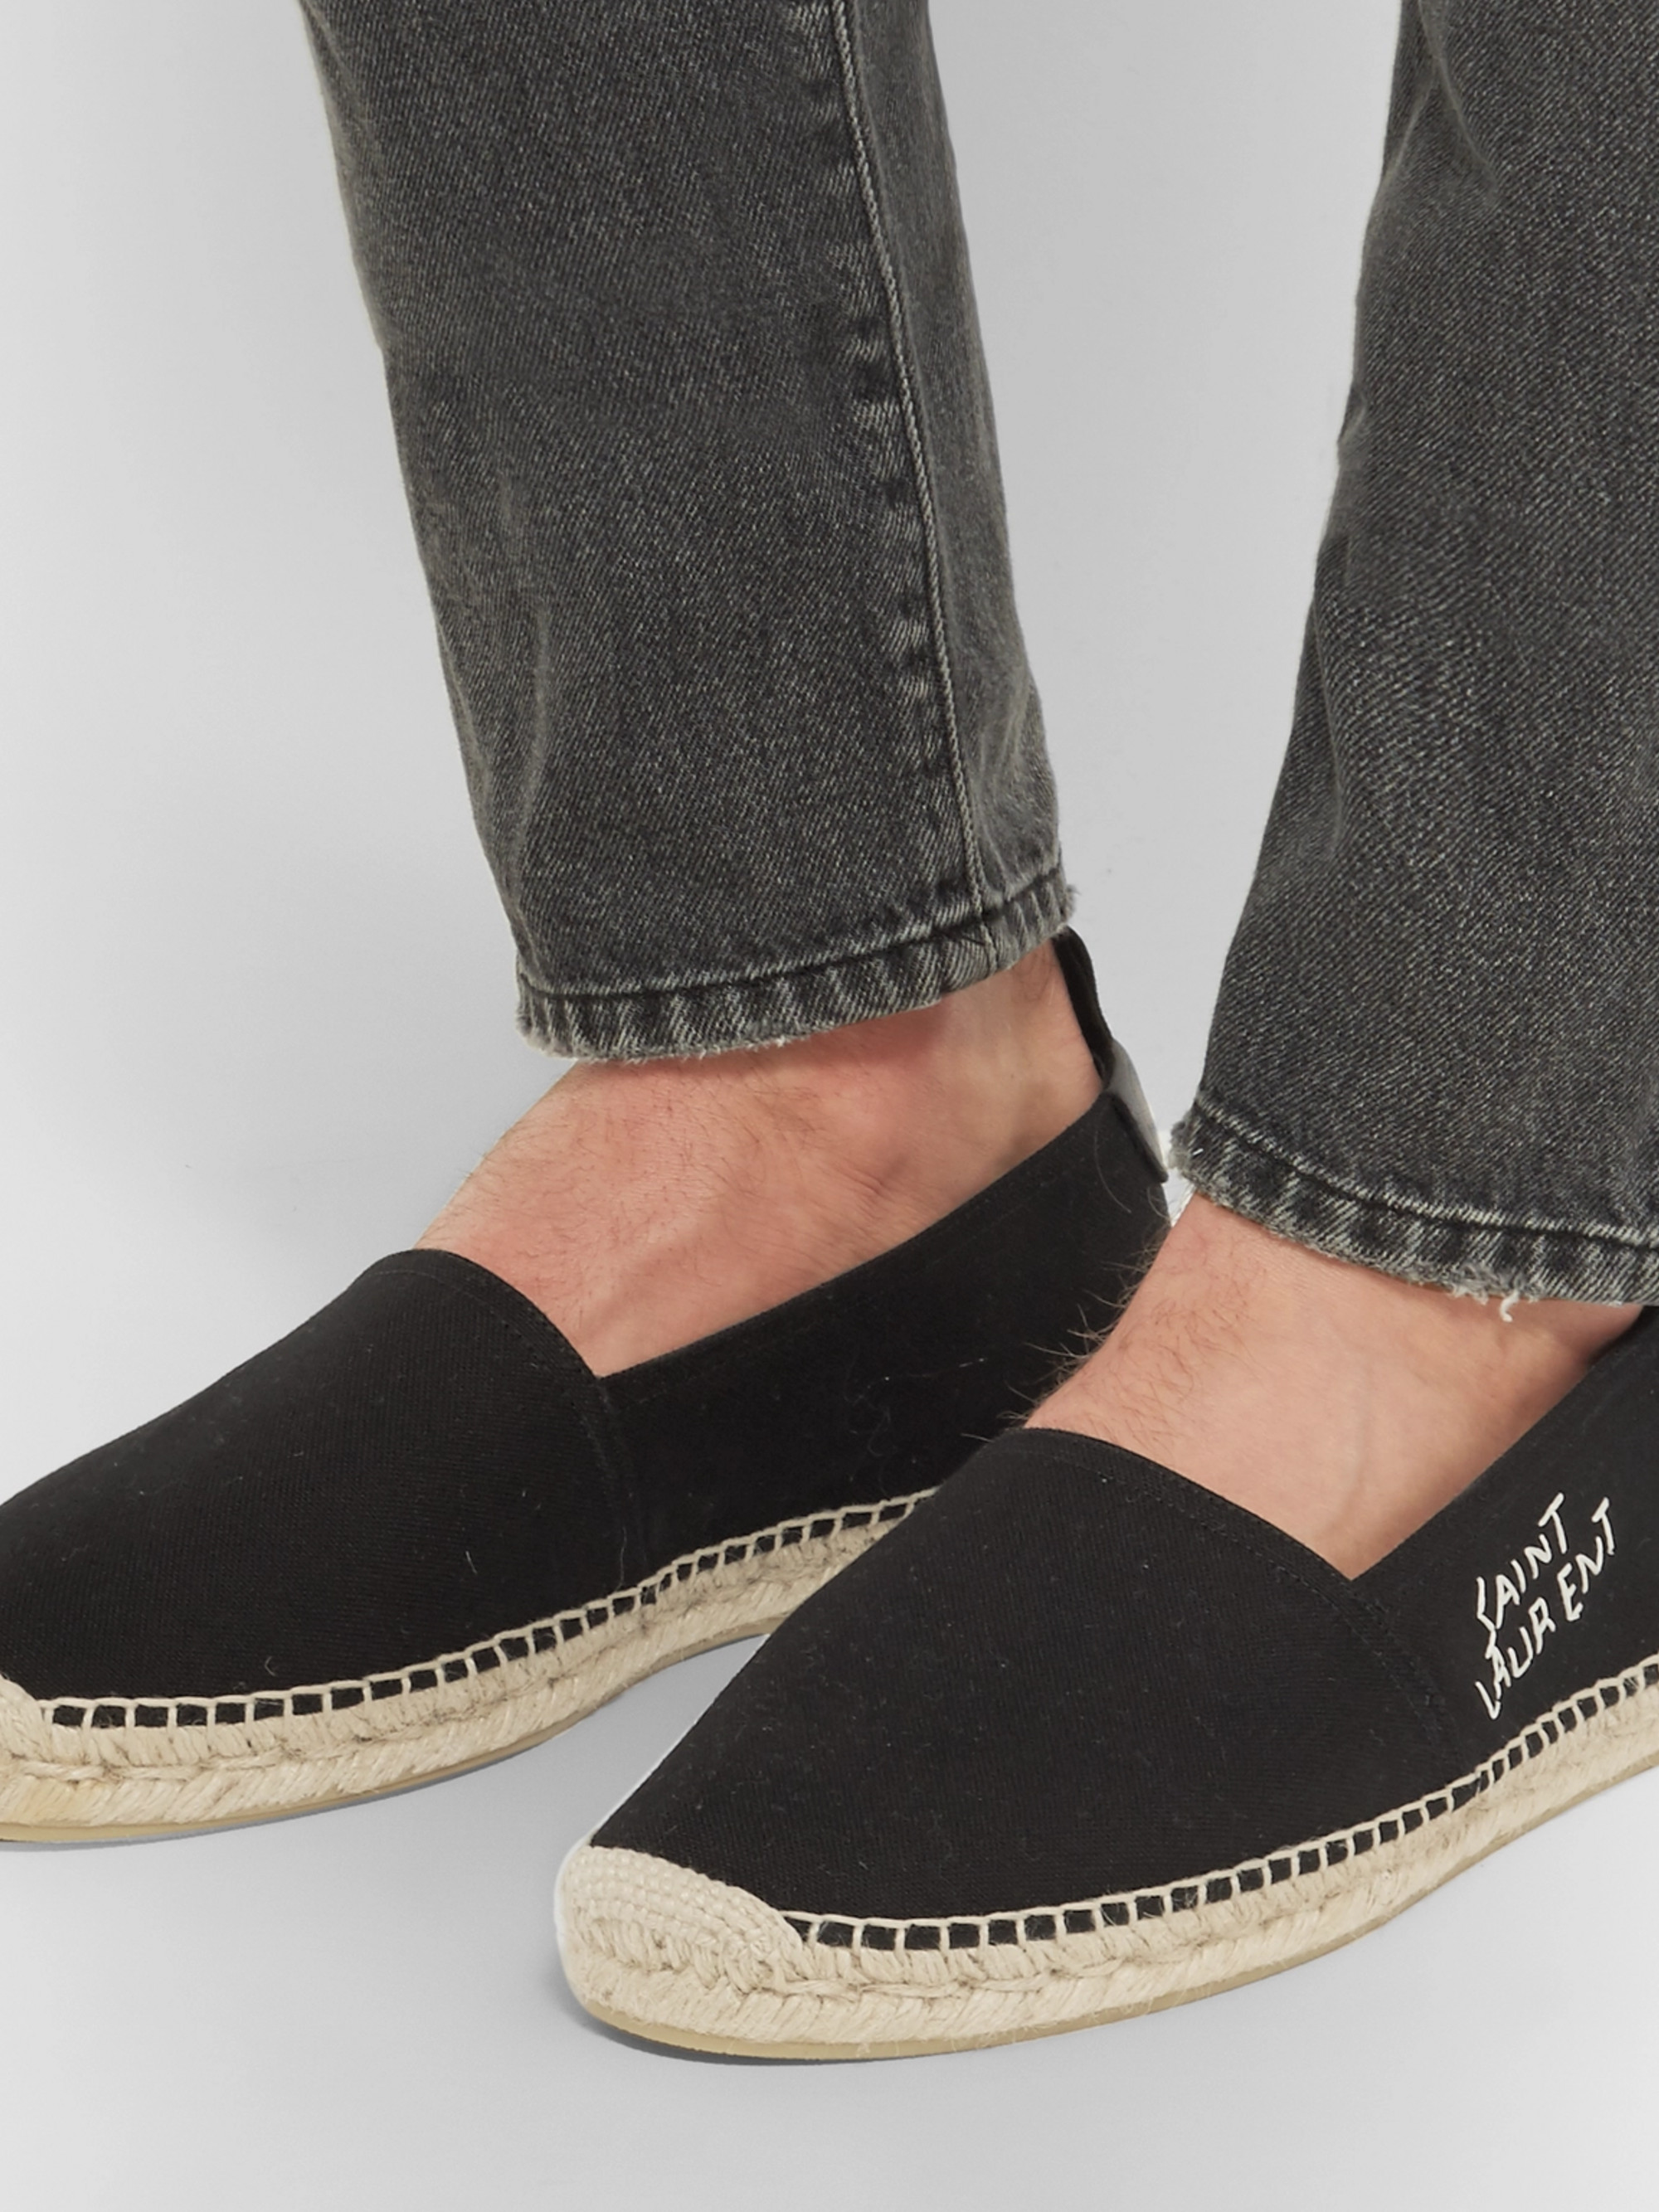 SAINT LAURENT Embroidered Canvas Espadrilles